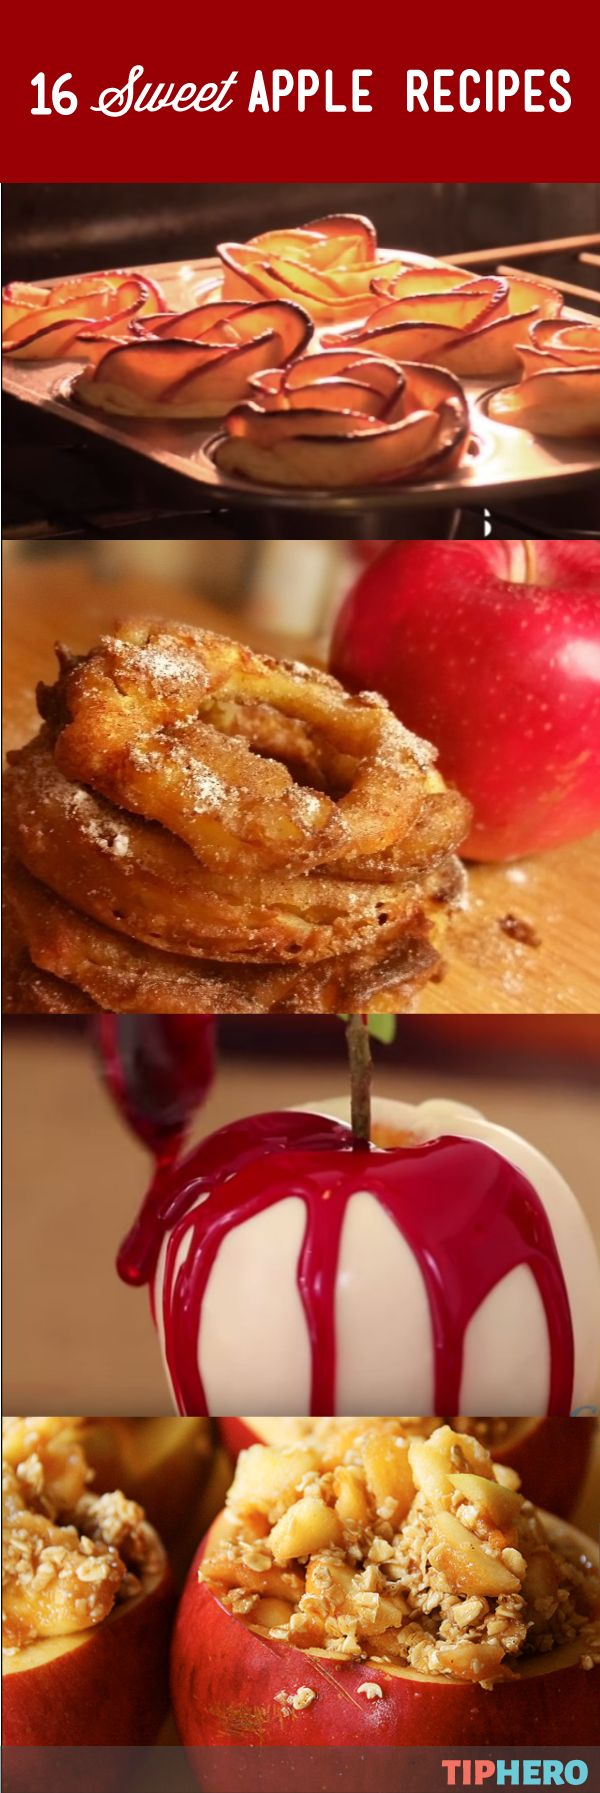 Sweet 16 Ways To Make Apples The Stars Of Your Fall | There's no one way to bake an apple, and this collection of apple-centric recipes will have your mouth watering for more! Think apple rings, apple roll-ups, candied apples, even apple nachos!